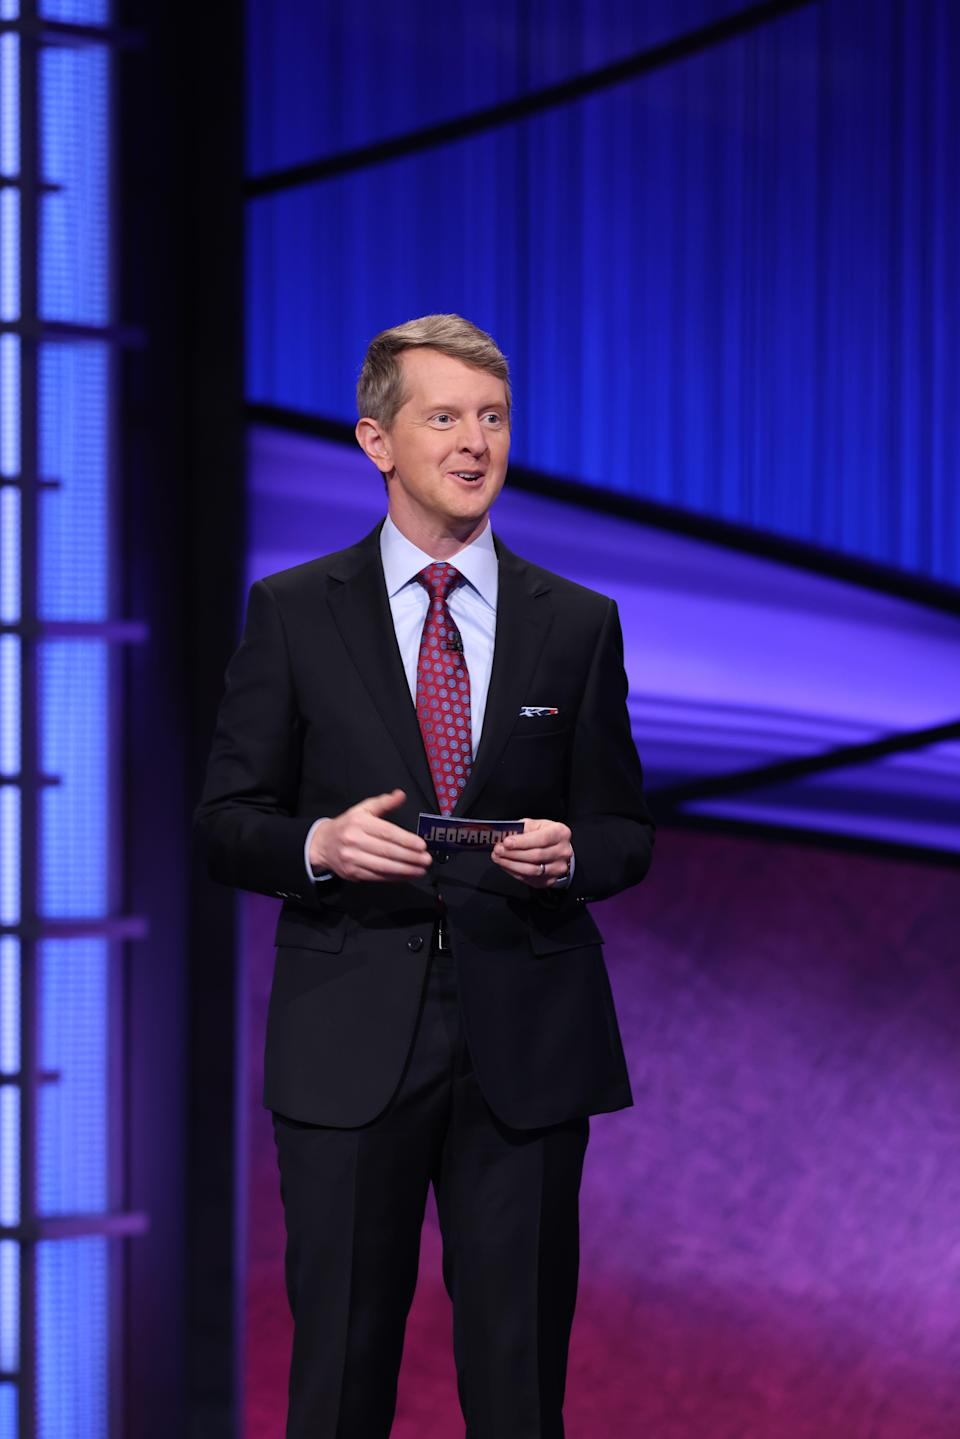 """Jeopardy!"" Greatest of All Time champion Ken Jennings was the first guest host, for a six-week stint that began Jan. 11, following Alex Trebek's final episode."